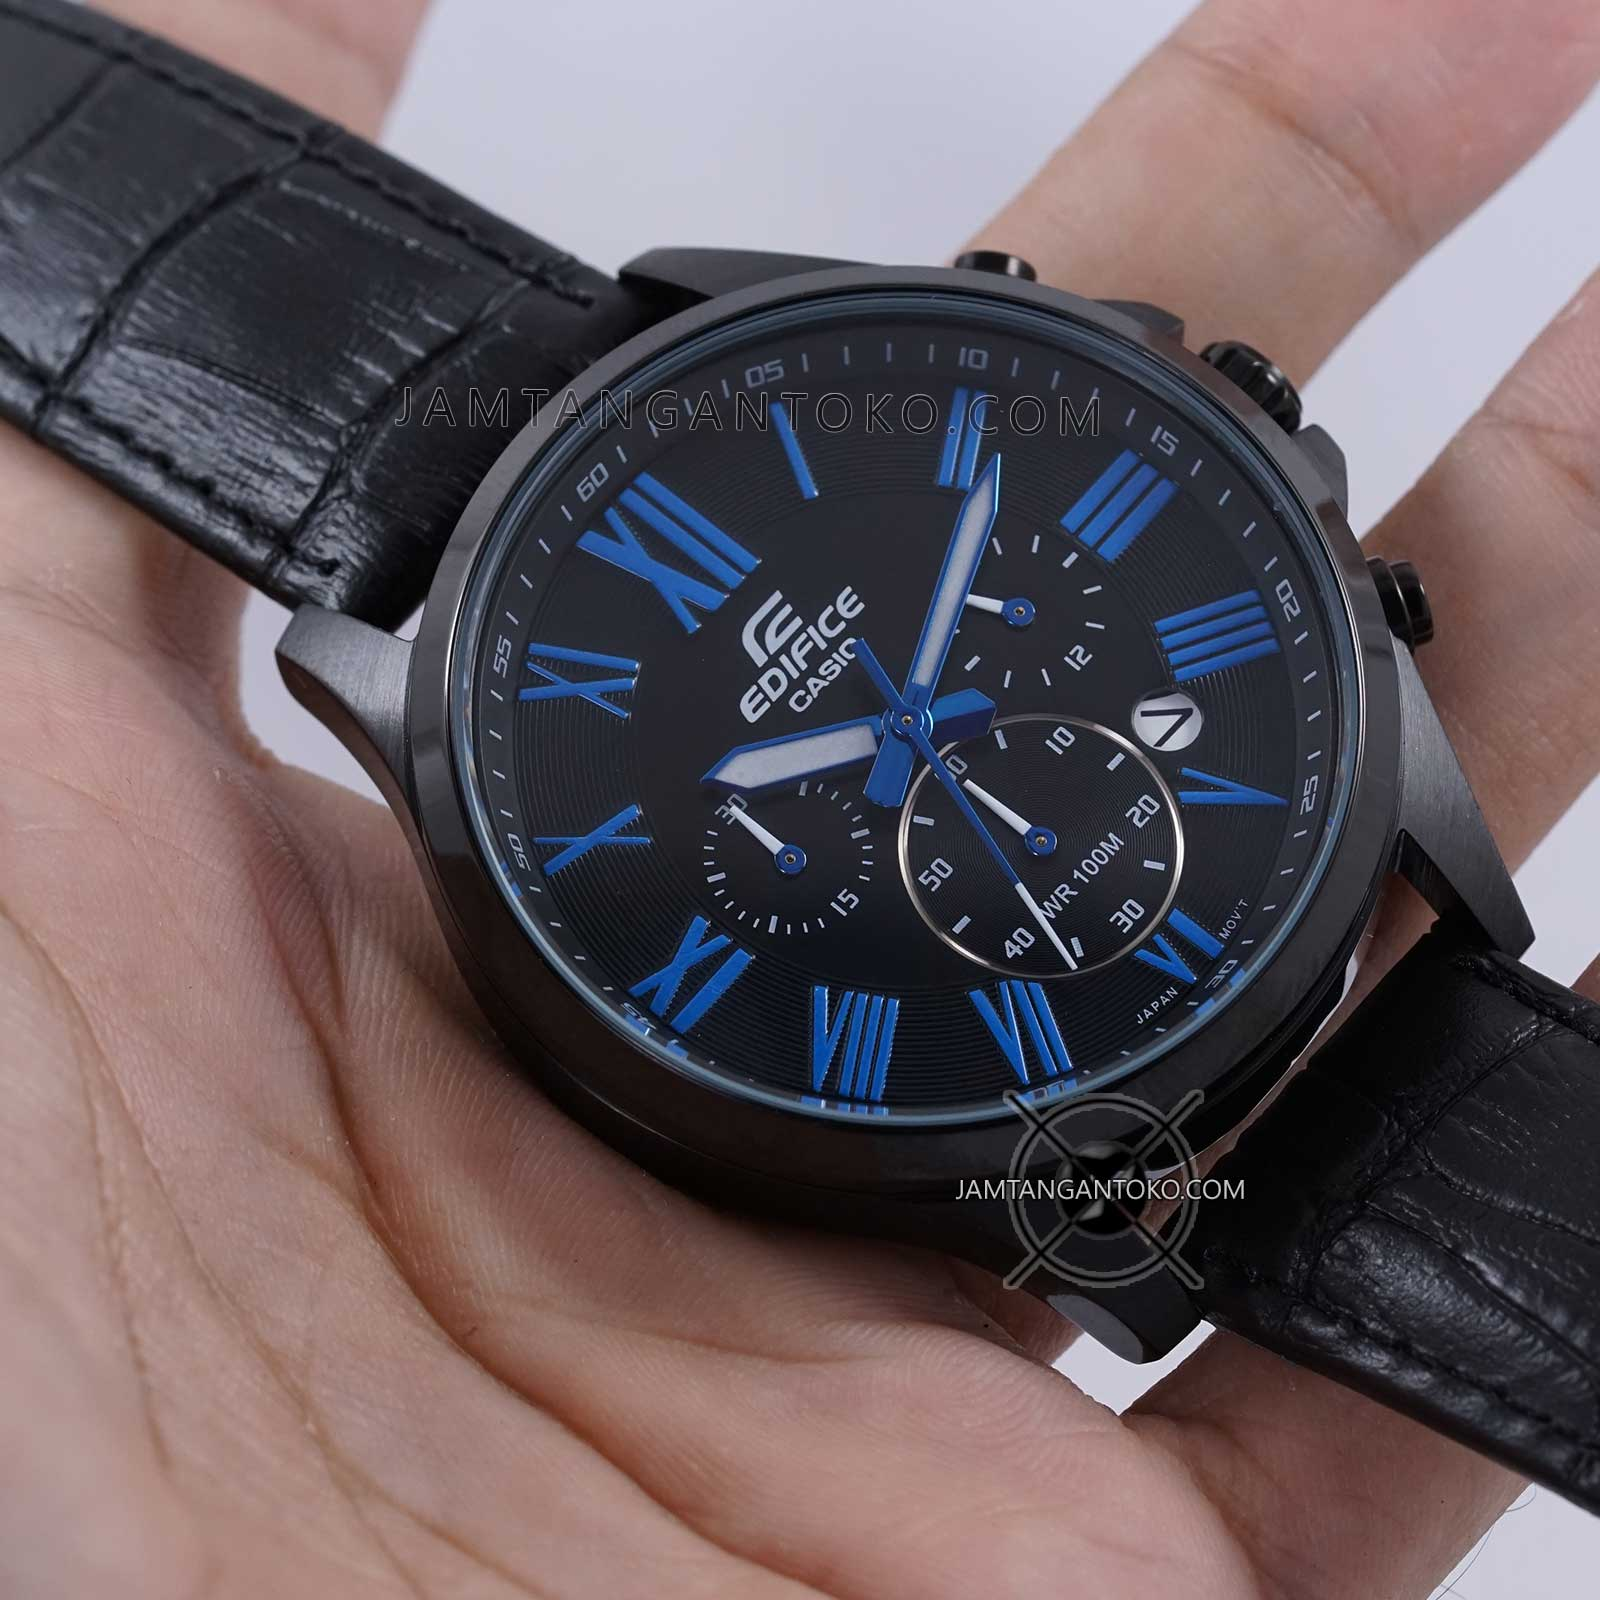 Casio Jam Tangan Pria Edifice Efr 512l 8avdf Hitam Daftar Harga Swiss Navy Merah Leather Strap Sn 8647 Casioo 554d 1a2vudf Chain Stainless Fullgold New